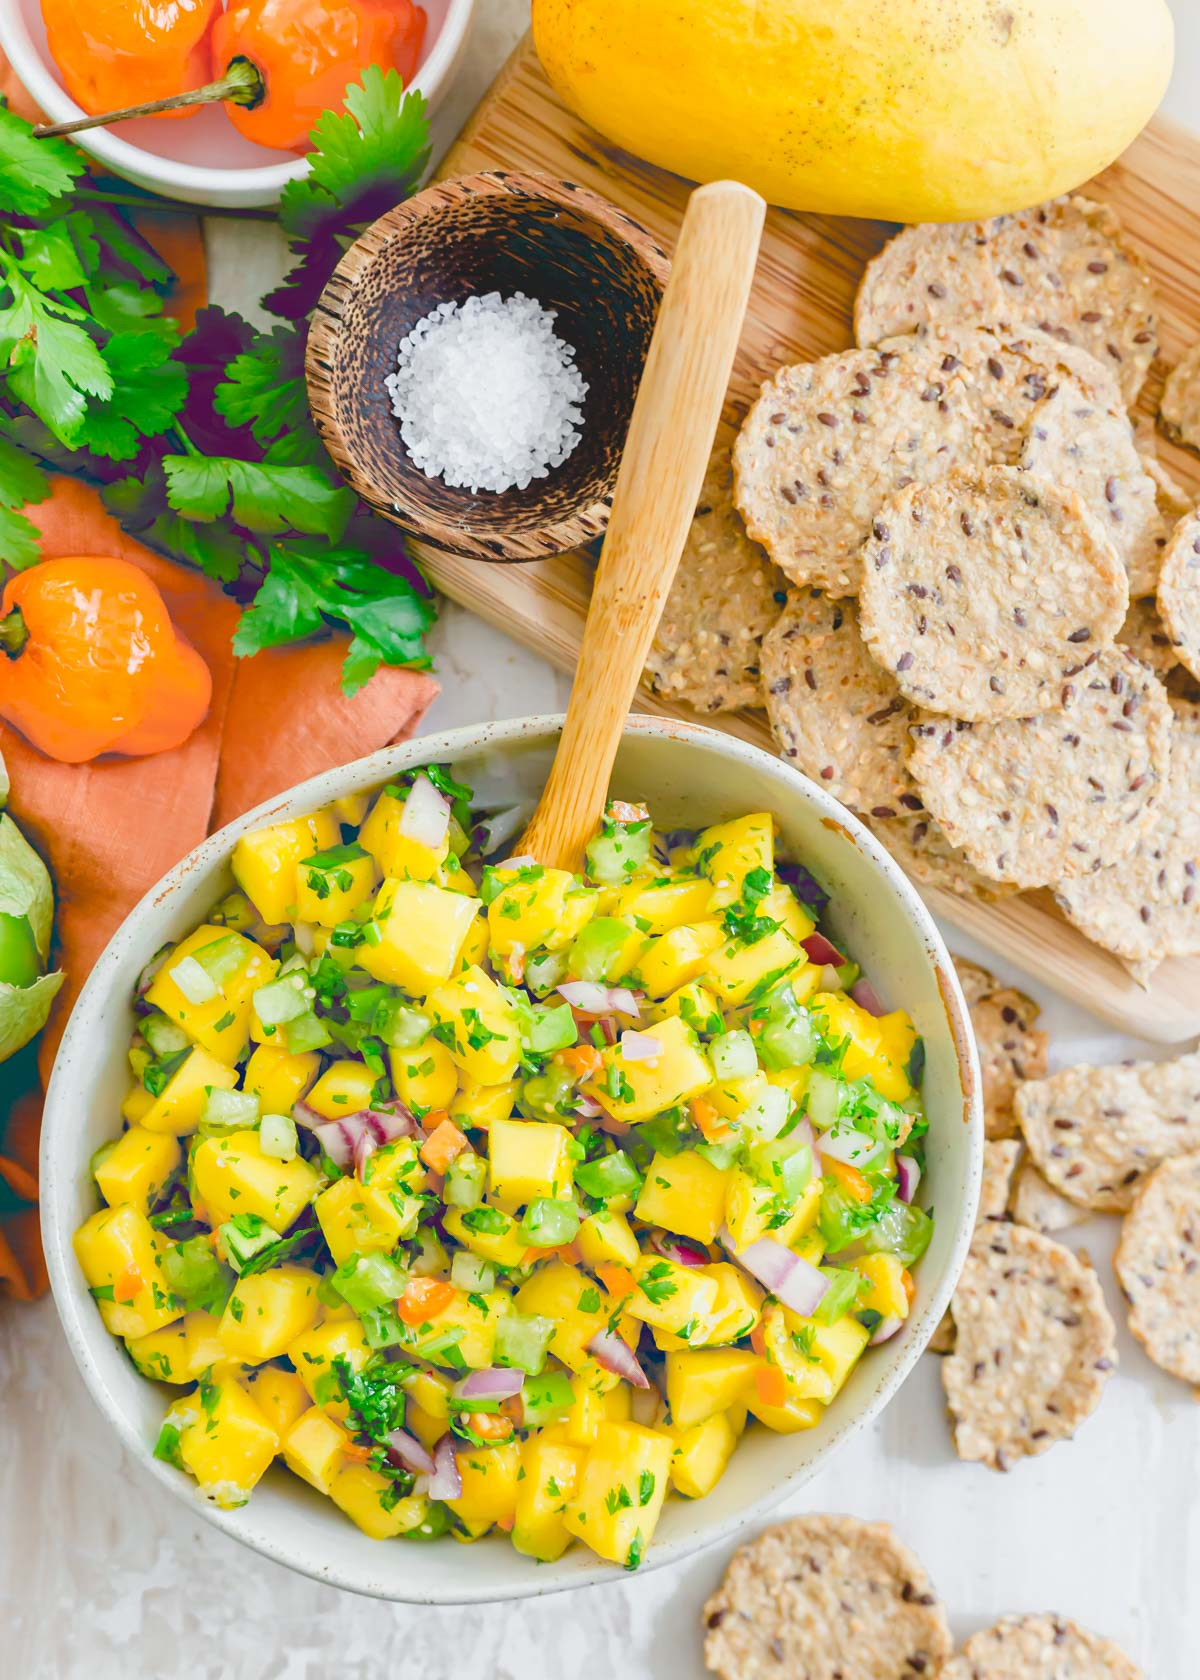 Fresh mango salsa with habanero peppers in a bowl with crackers on the side for serving.